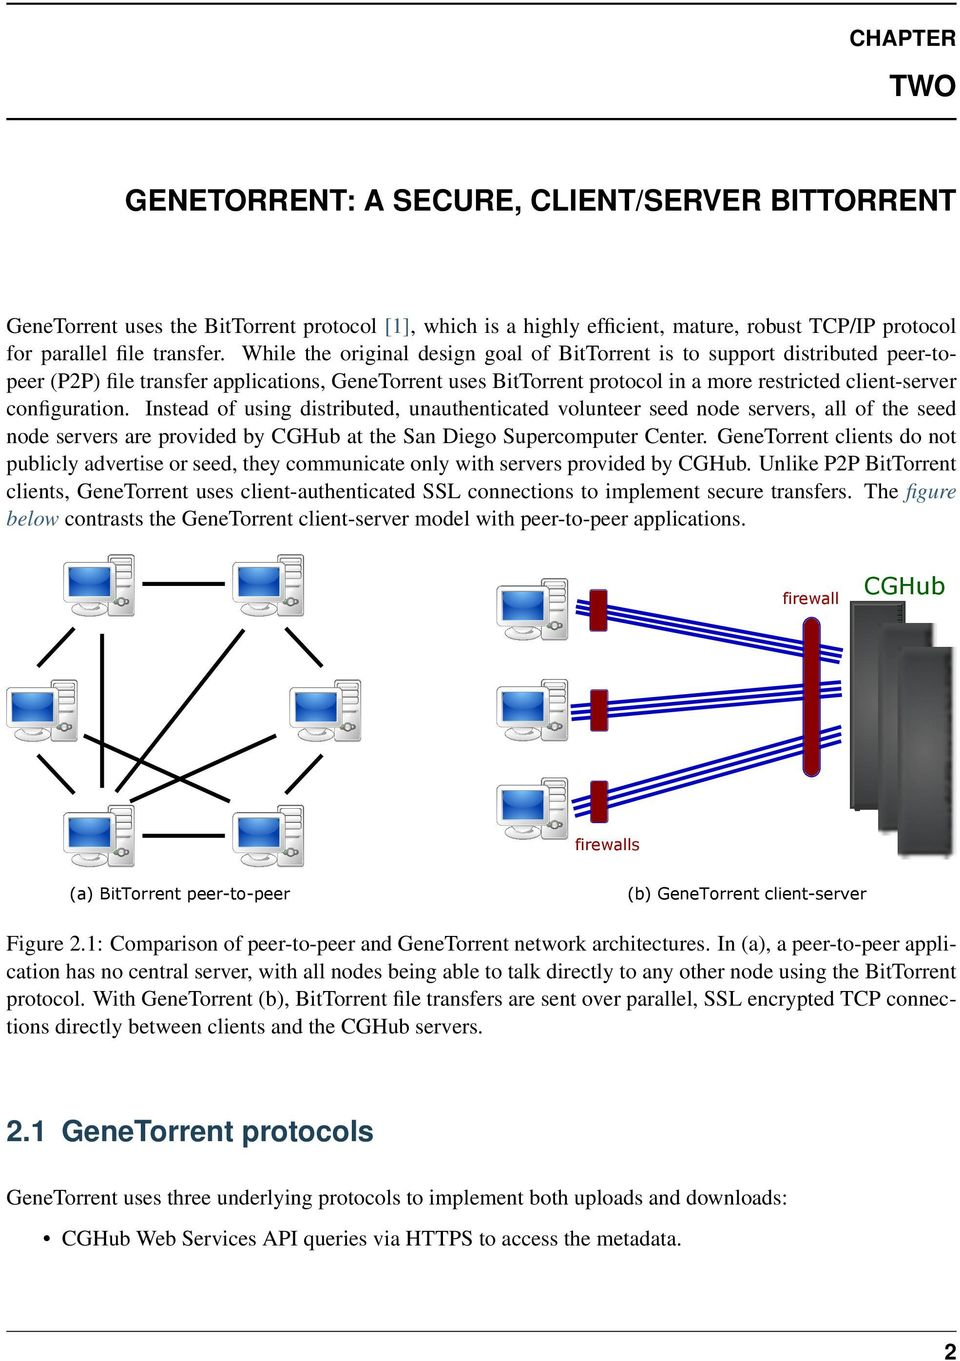 While the original design goal of BitTorrent is to support distributed peer-topeer (P2P) file transfer applications, GeneTorrent uses BitTorrent protocol in a more restricted client-server